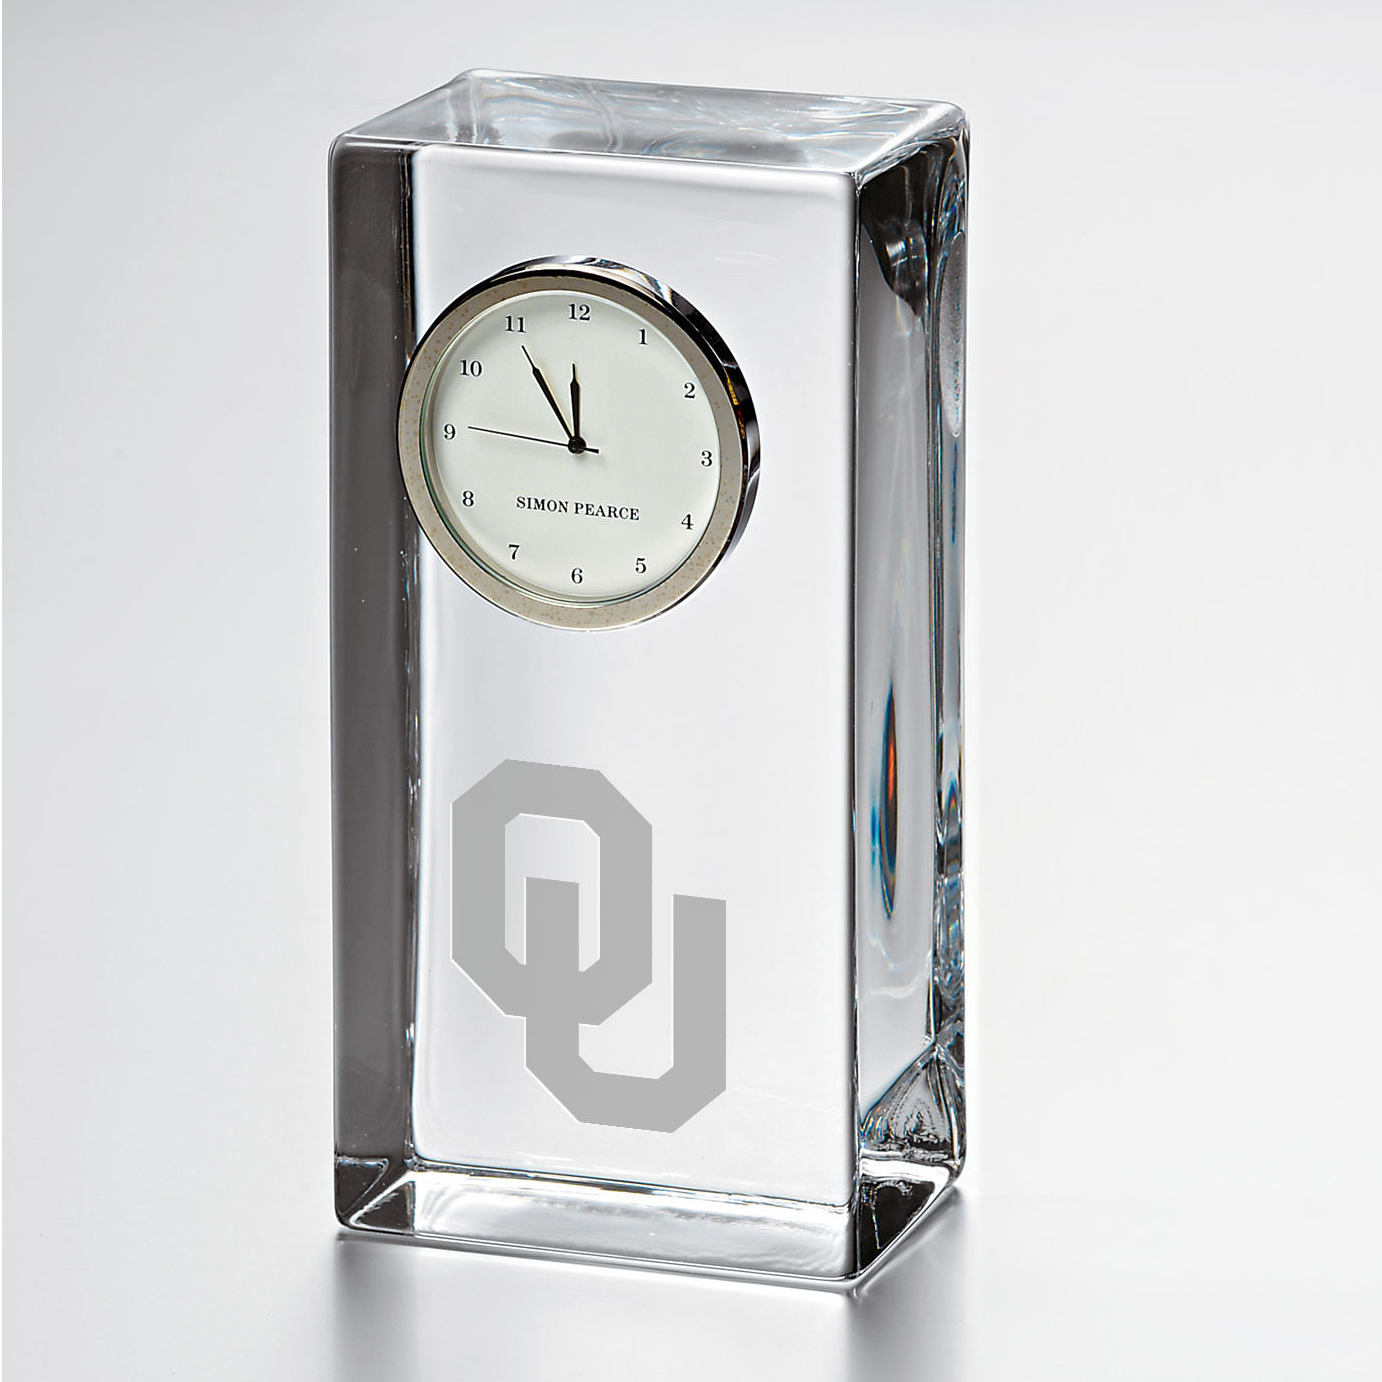 Oklahoma Tall Desk Clock by Simon Pearce